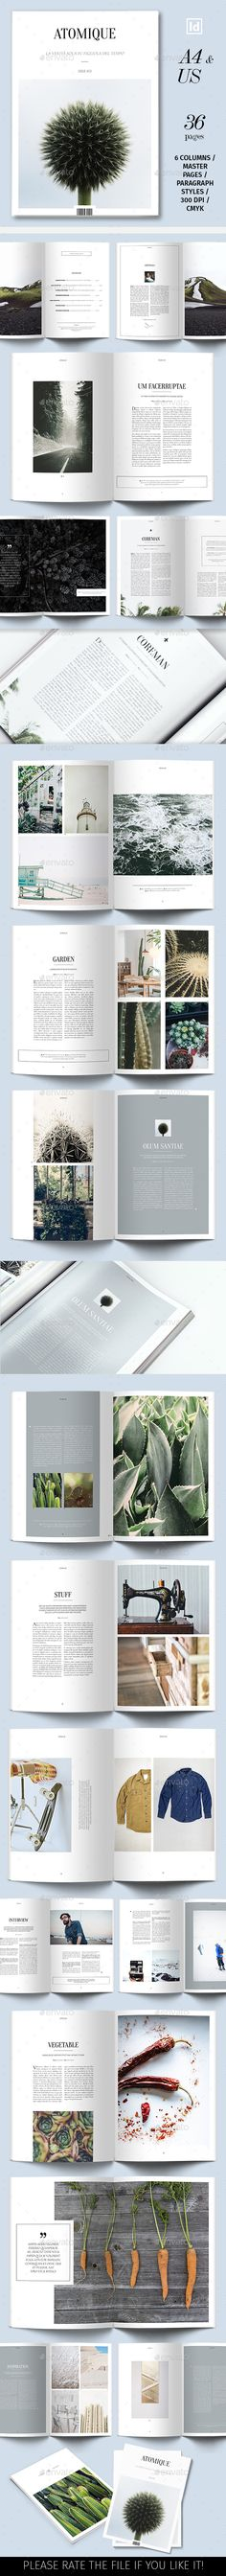 Atomique Magazine Template - Magazines Print Templates Download here : https://graphicriver.net/item/atomique-magazine-template/19230413?s_rank=144&ref=Al-fatih